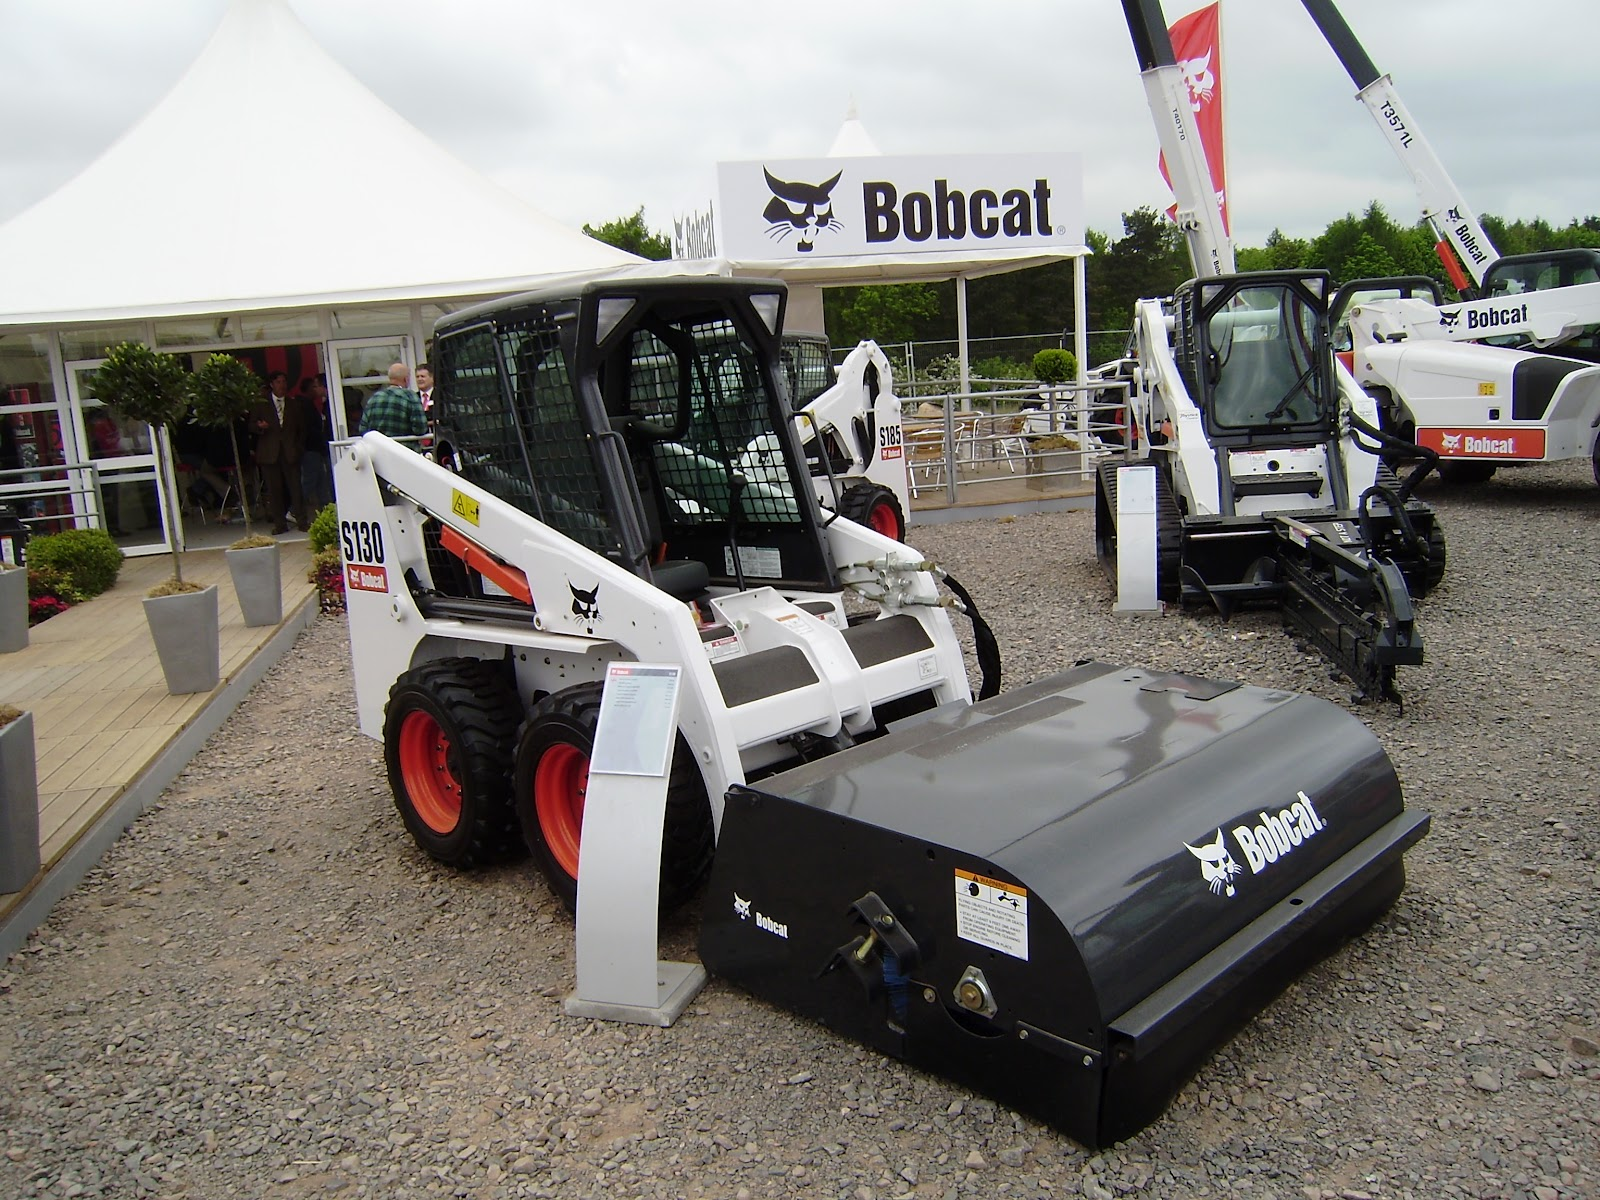 Aspal Bobcat S185 Skid Steer Loader